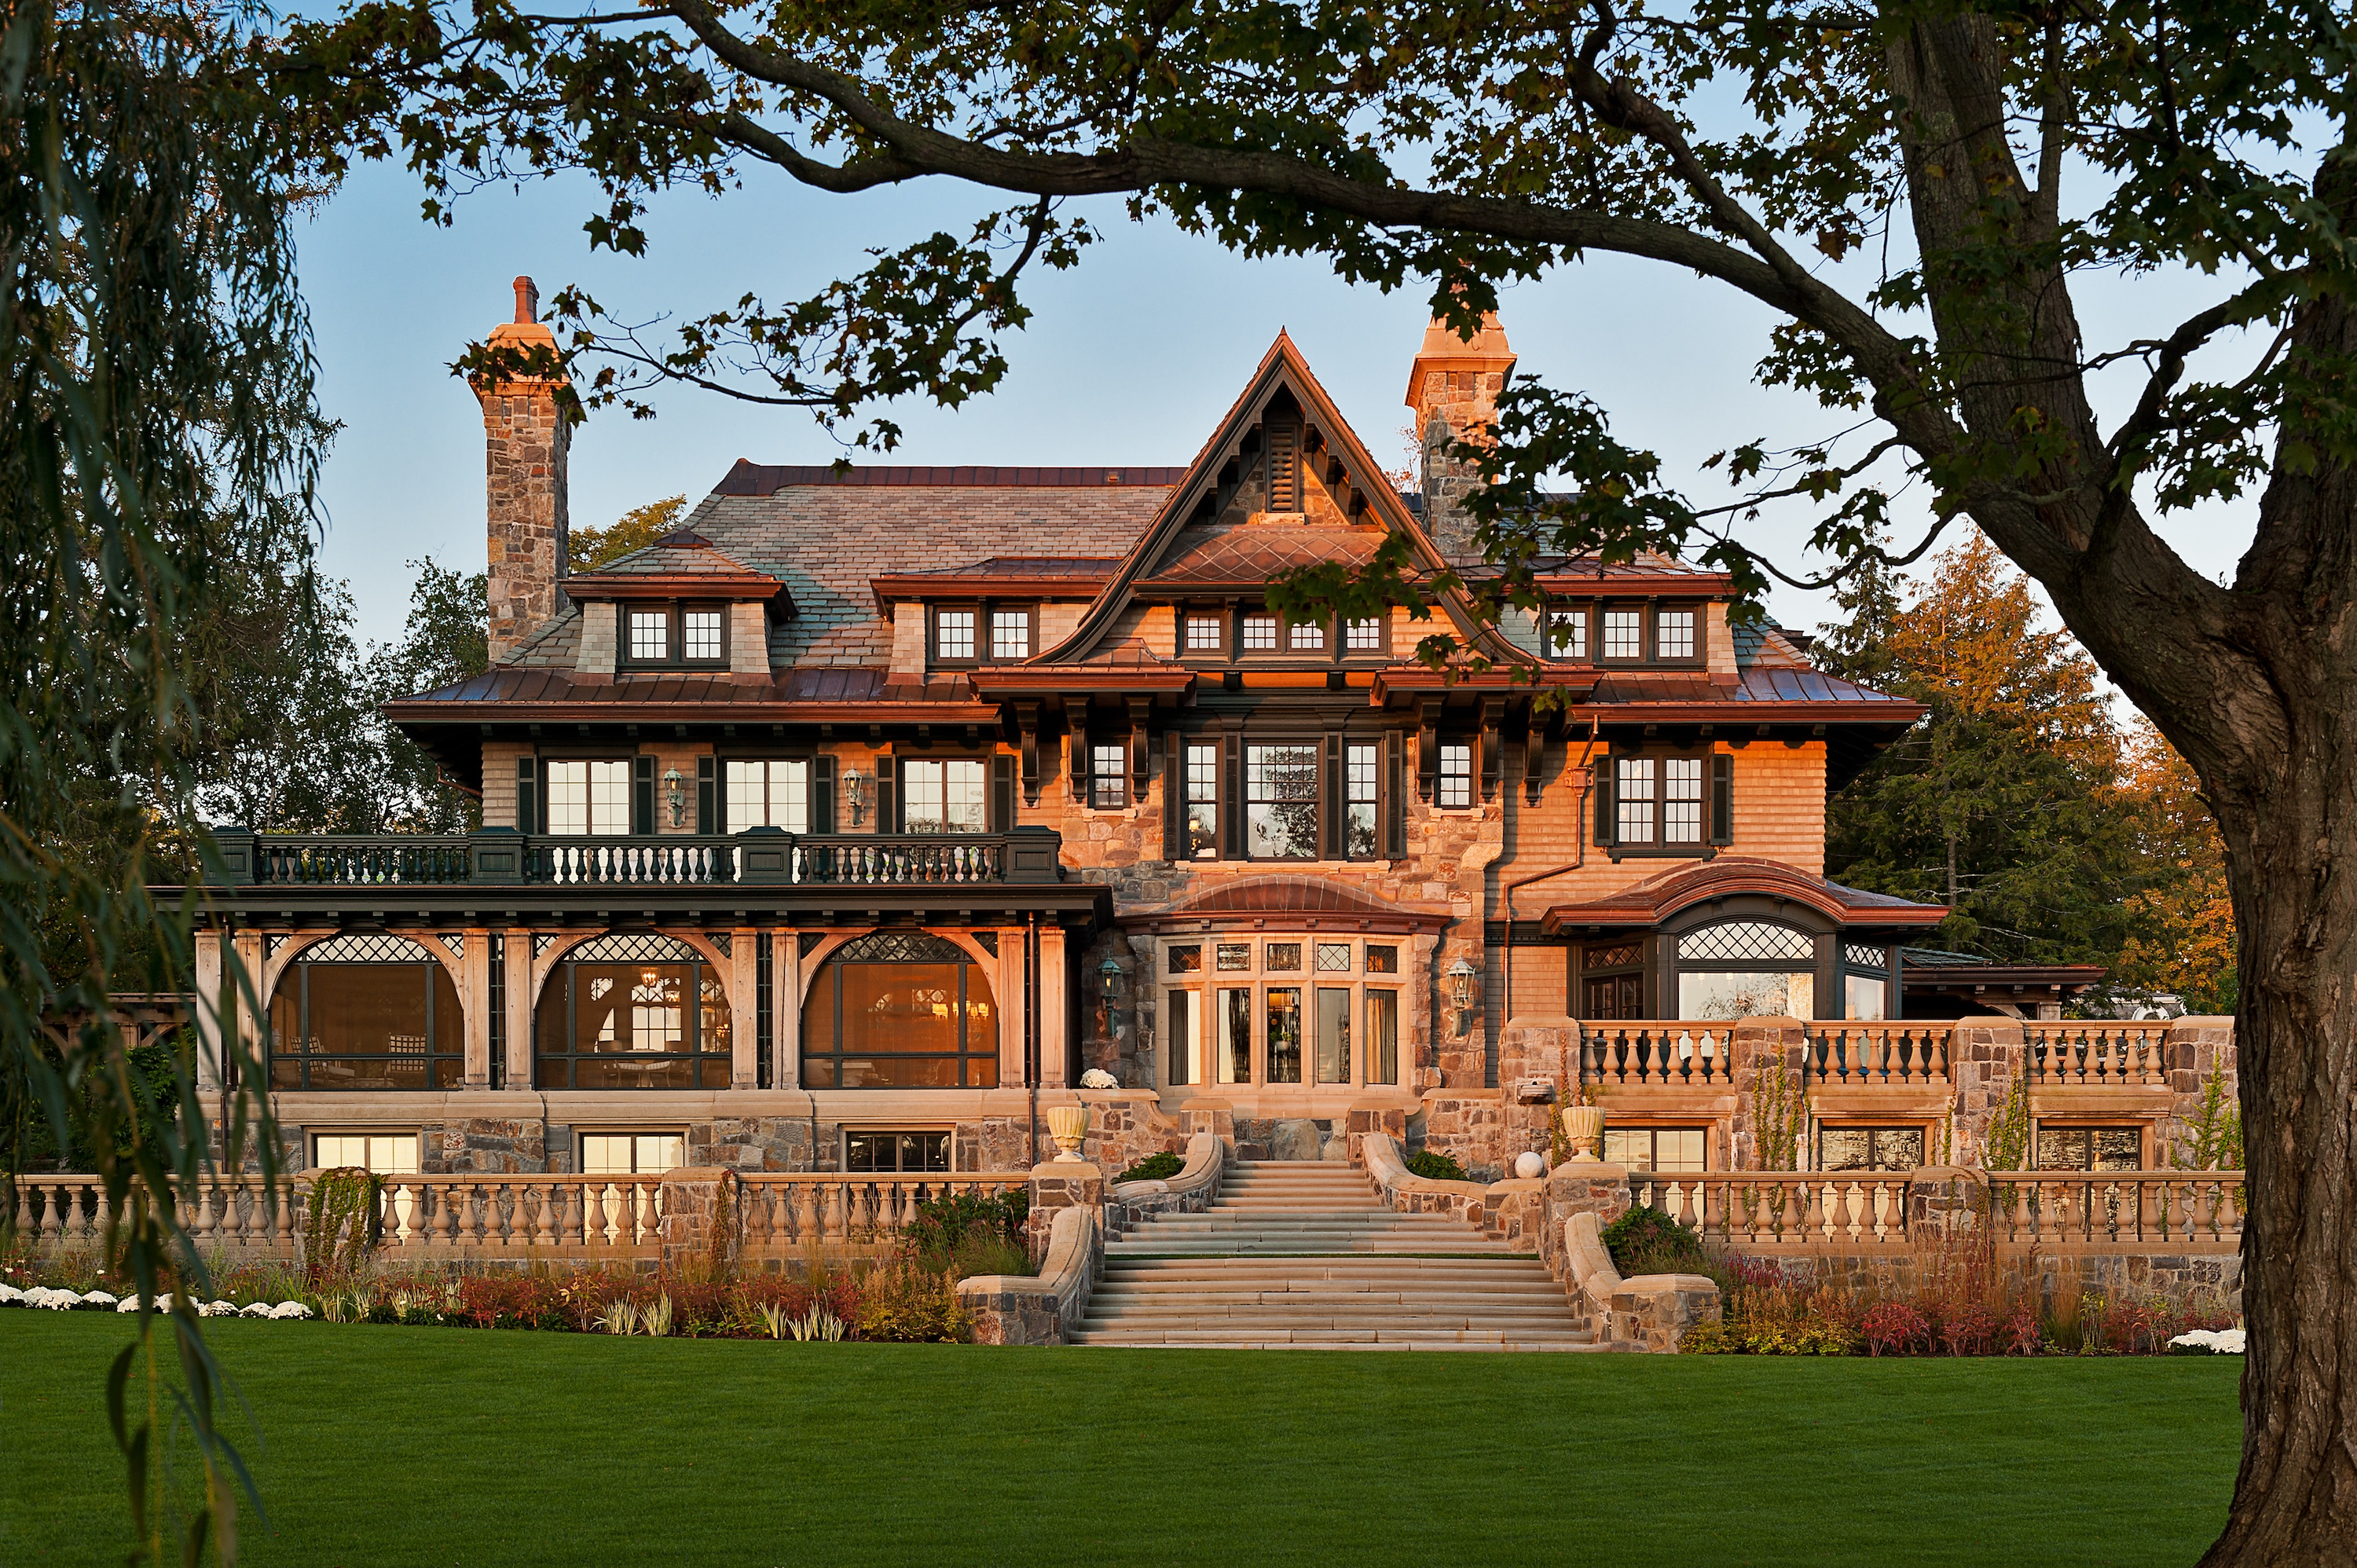 Grand lakefront home in upstate new york features hope 39 s for Home design york